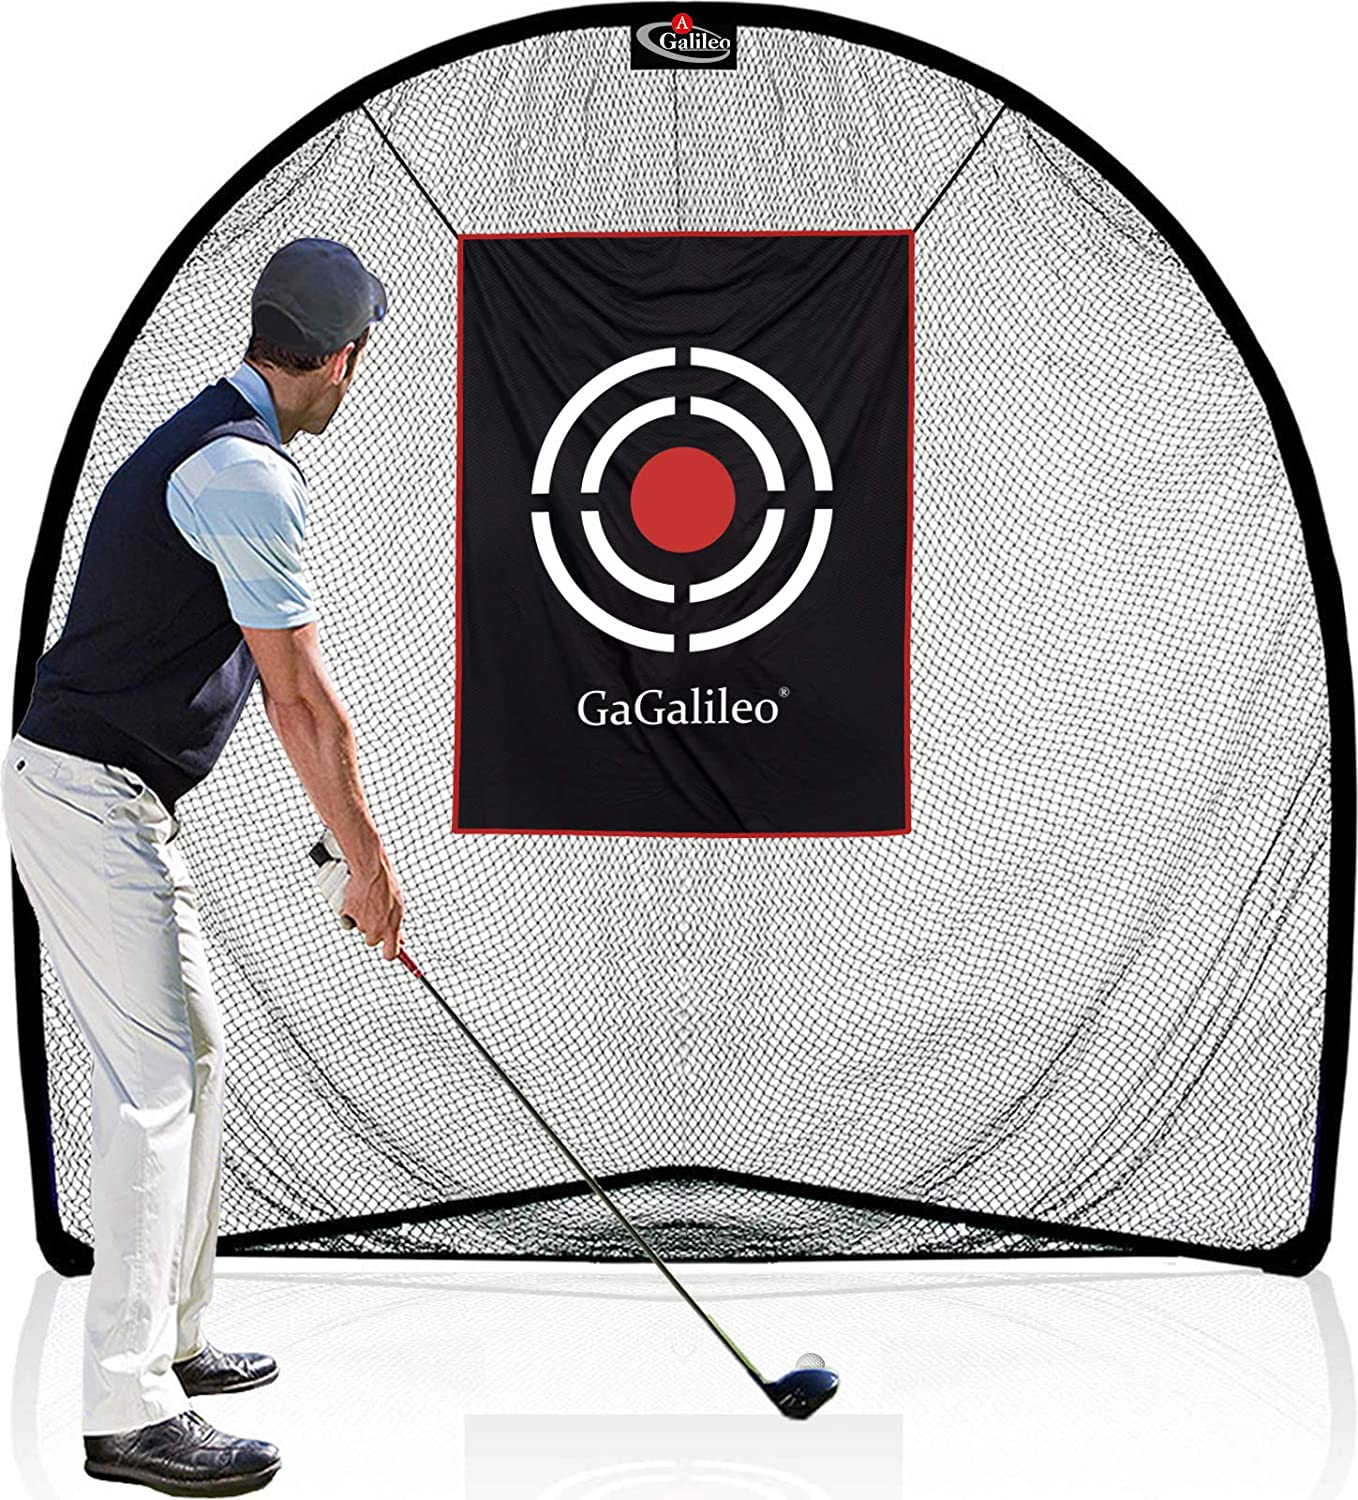 Galileo Golf Practice Net Hitting Nets Indoor & Outdoor Driving Range Training Aids with Carry Bag and Target